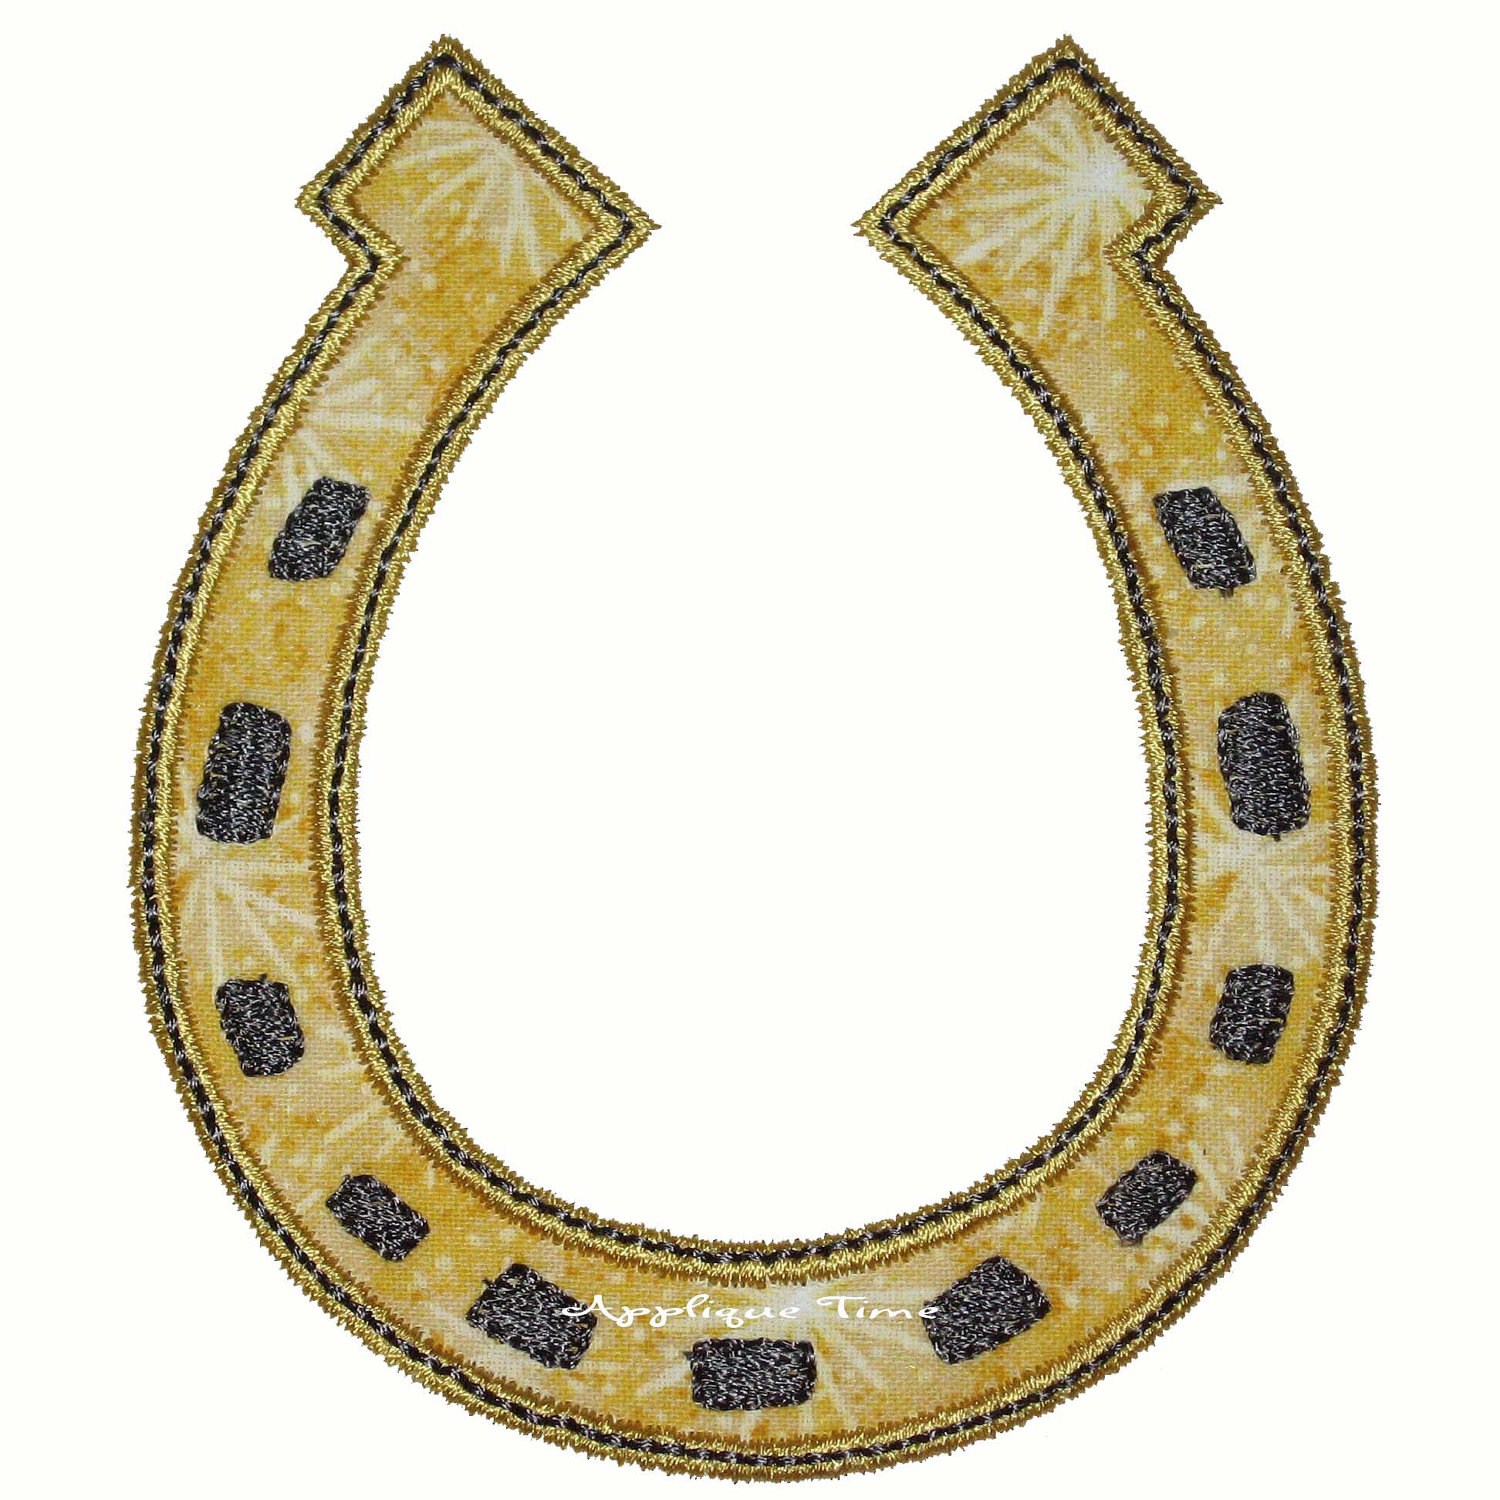 Horseshoe clipart brown Free Horse Download on Clip